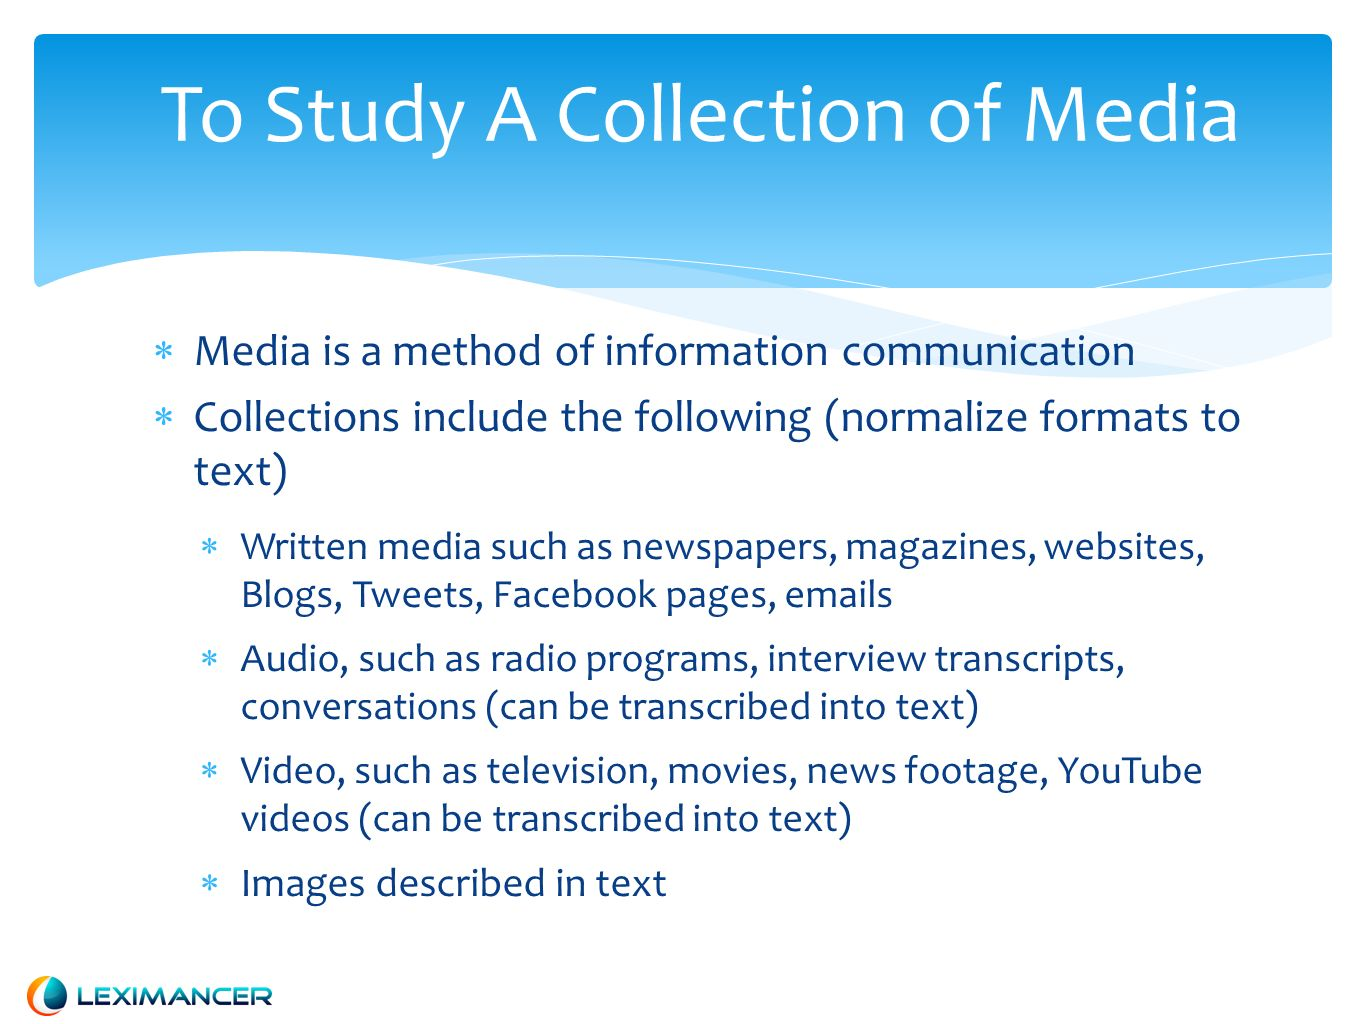 To Study A Collection of Media Media is a method of information communication Collections include the following (normalize formats to text) Written media such as newspapers, magazines, websites, Blogs, Tweets, Facebook pages,  s Audio, such as radio programs, interview transcripts, conversations (can be transcribed into text) Video, such as television, movies, news footage, YouTube videos (can be transcribed into text) Images described in text